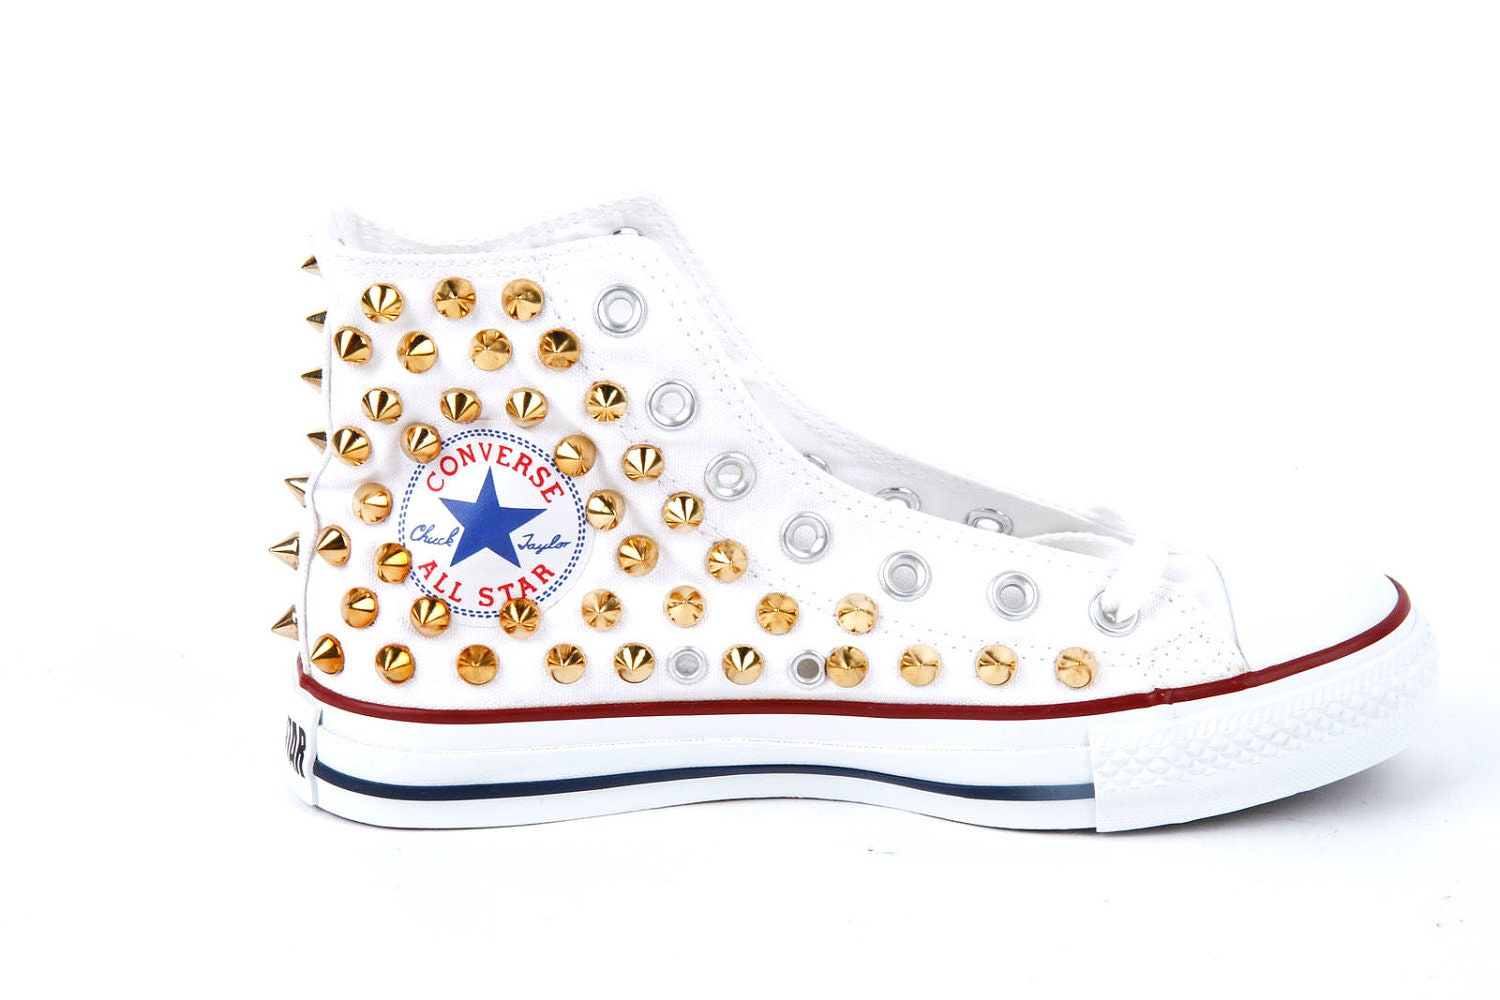 12c6faf84bfe ORIGINAL CONVERSE ALLSTAR CHUCK TAYLOR HIGH TOP STUDDED CONVERSE STUD GOLD  SPIKE ON WHITE SHOES on The Hunt